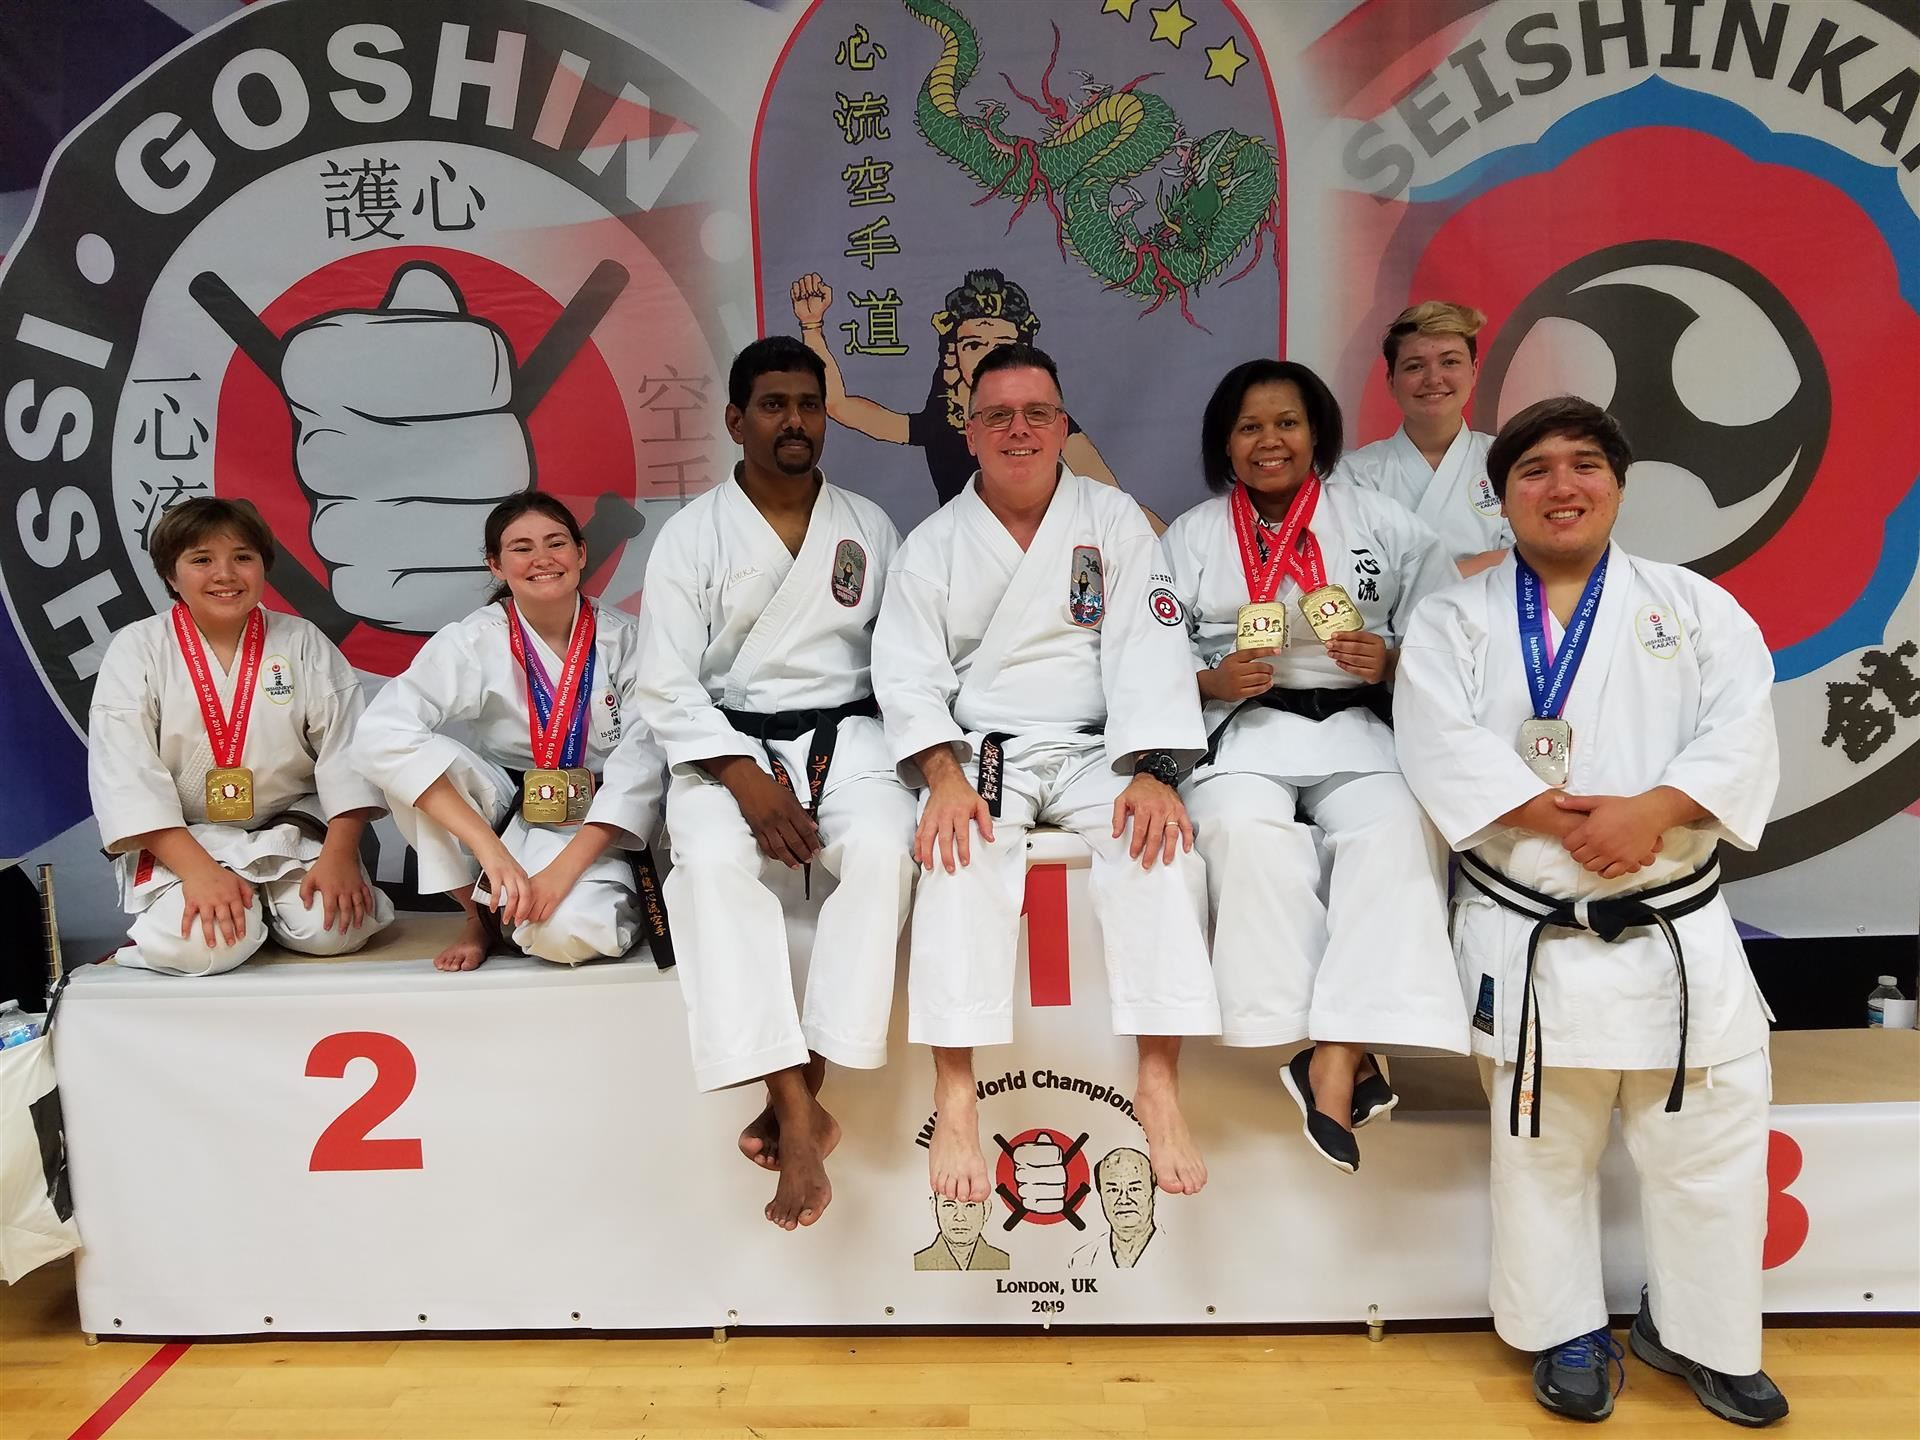 Karate champions on podium with medals